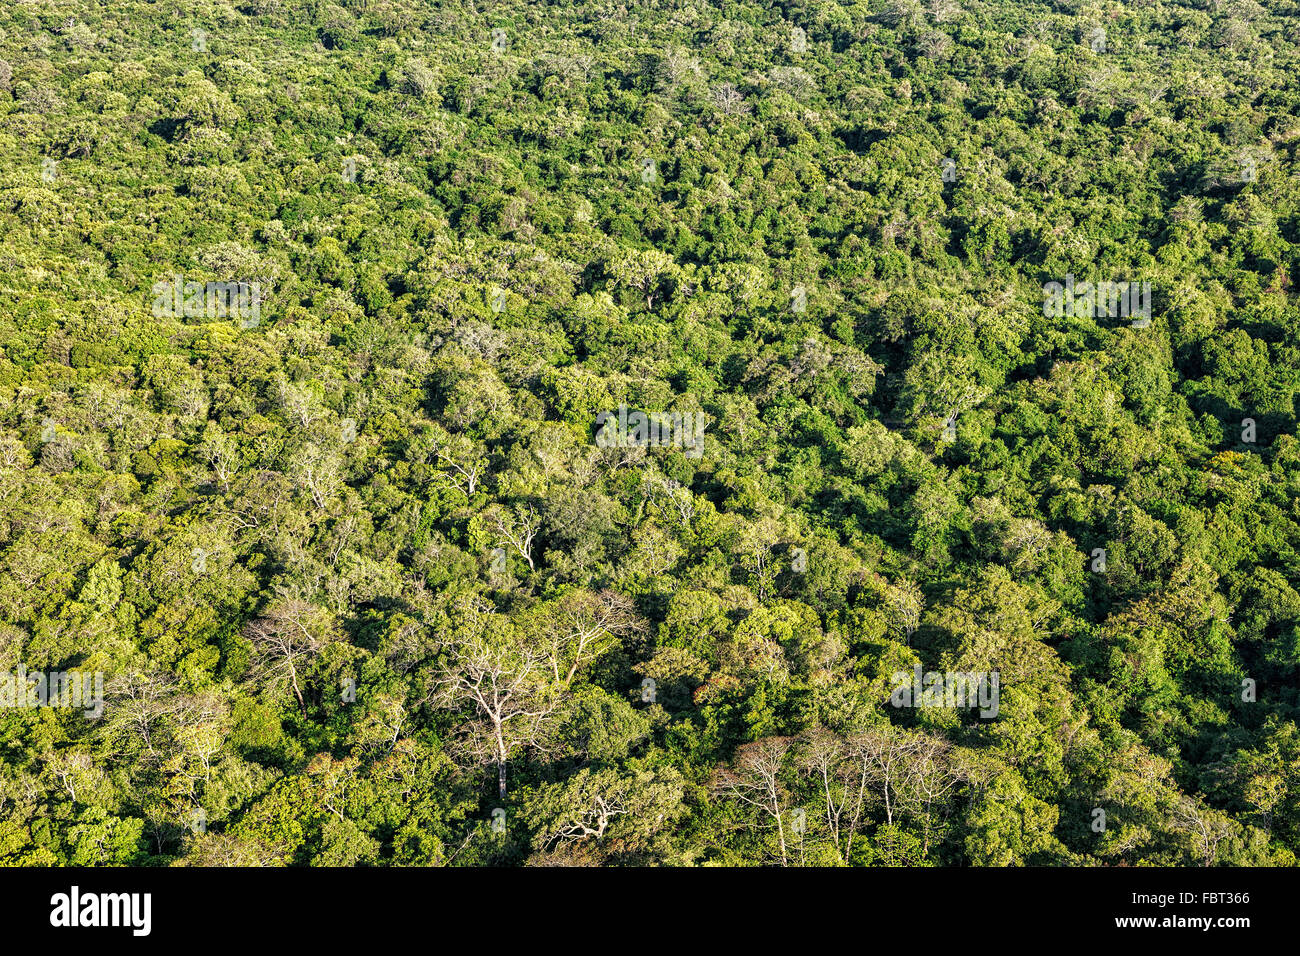 Aerial view of tropical forest - Stock Image